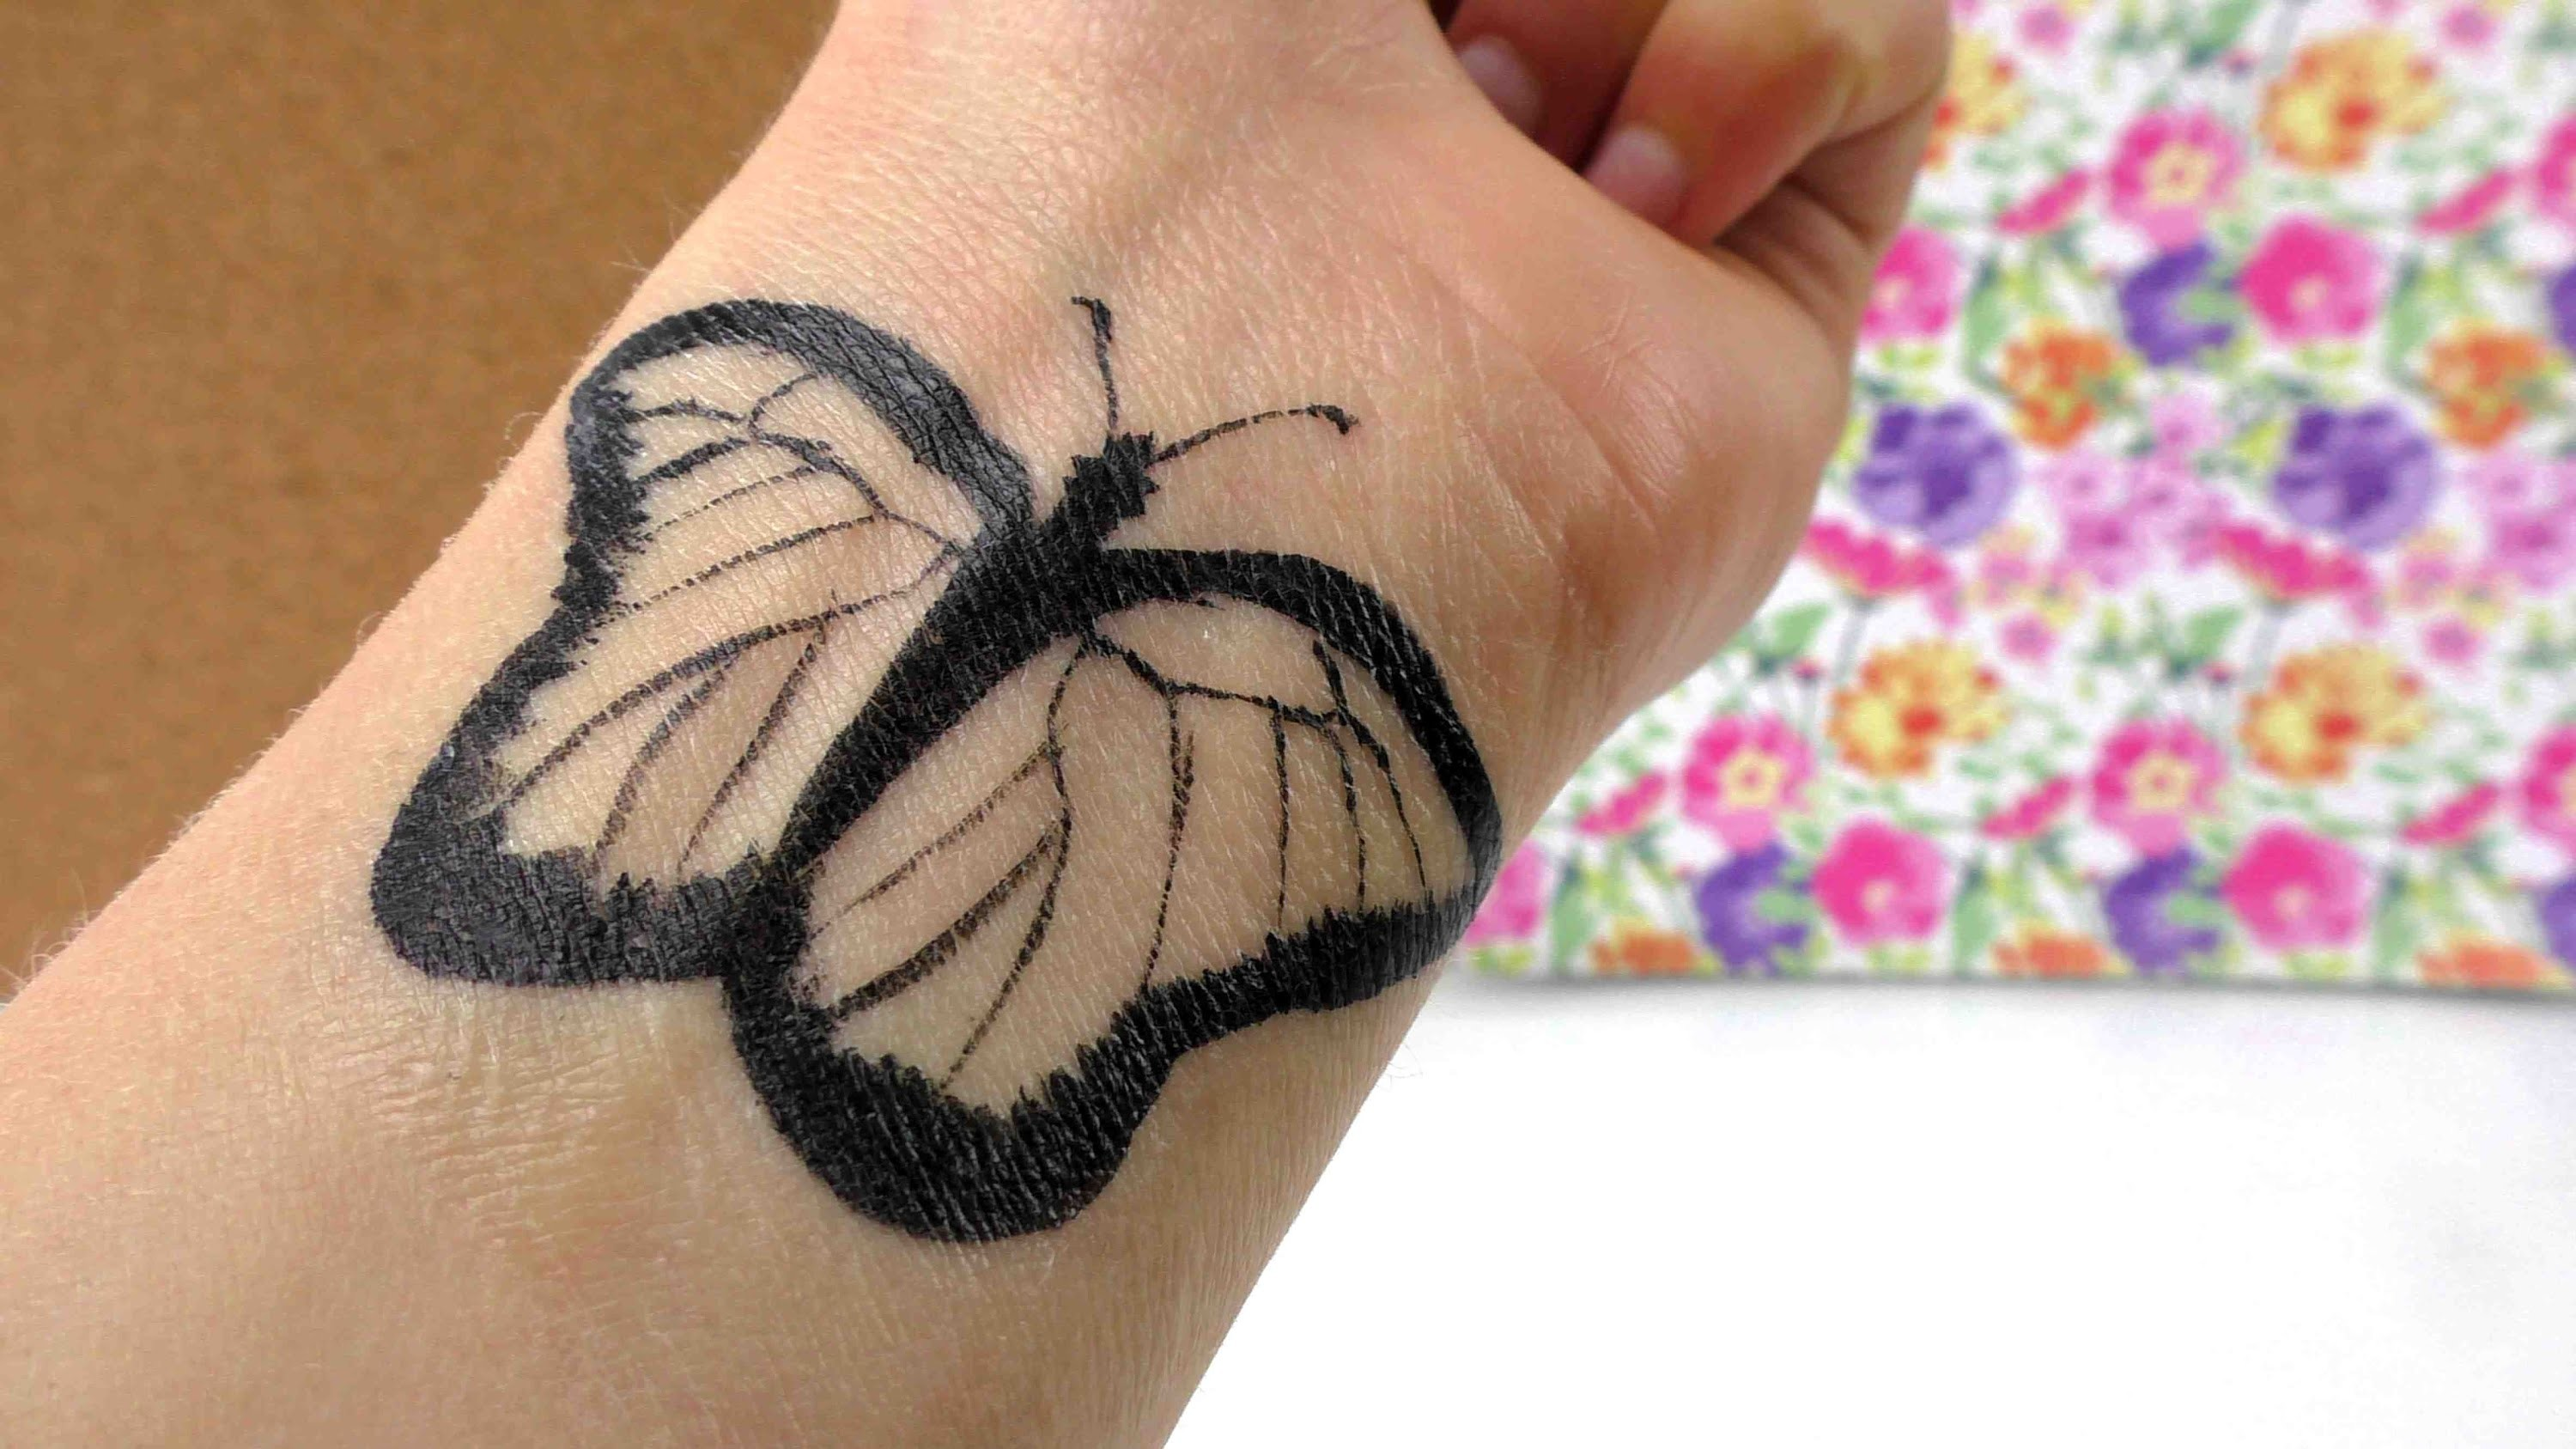 Tattoo selber machen deutsch - DIY TATTOO temporär Tutorial - Sommer DIY Ideen